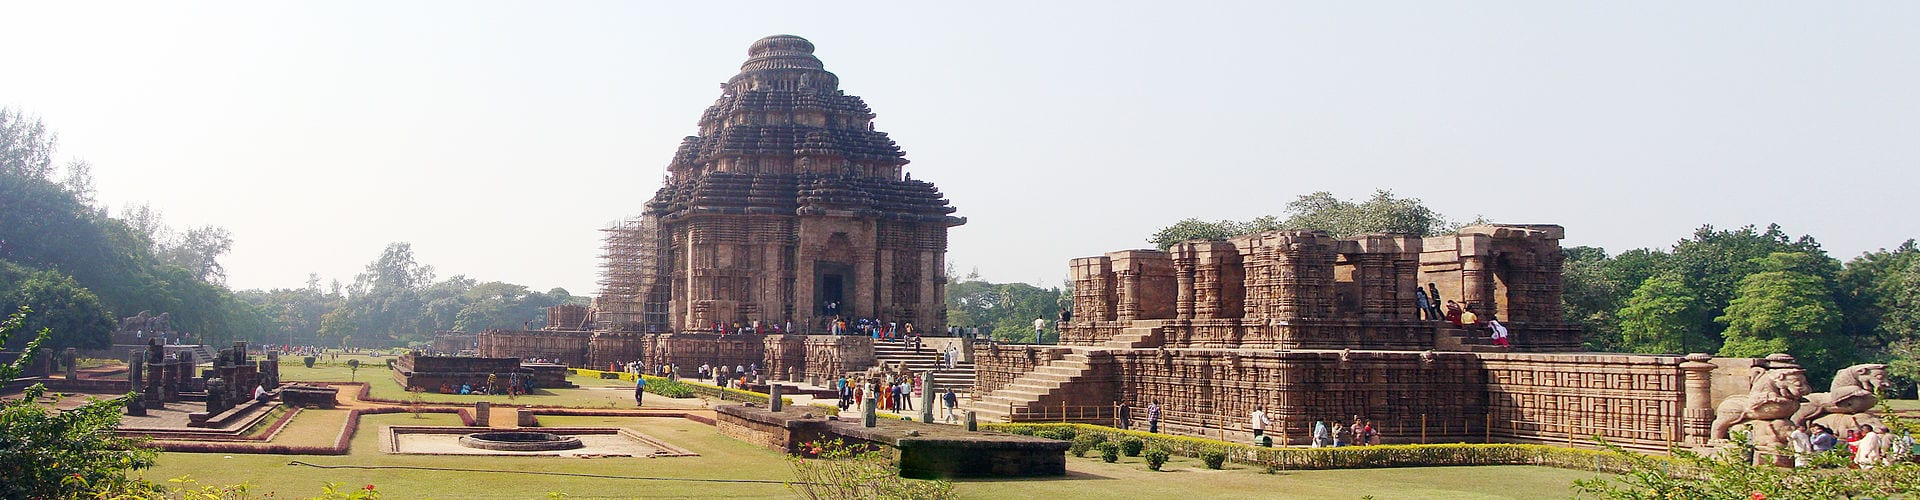 panoramic-view-of-konark-sun-temple